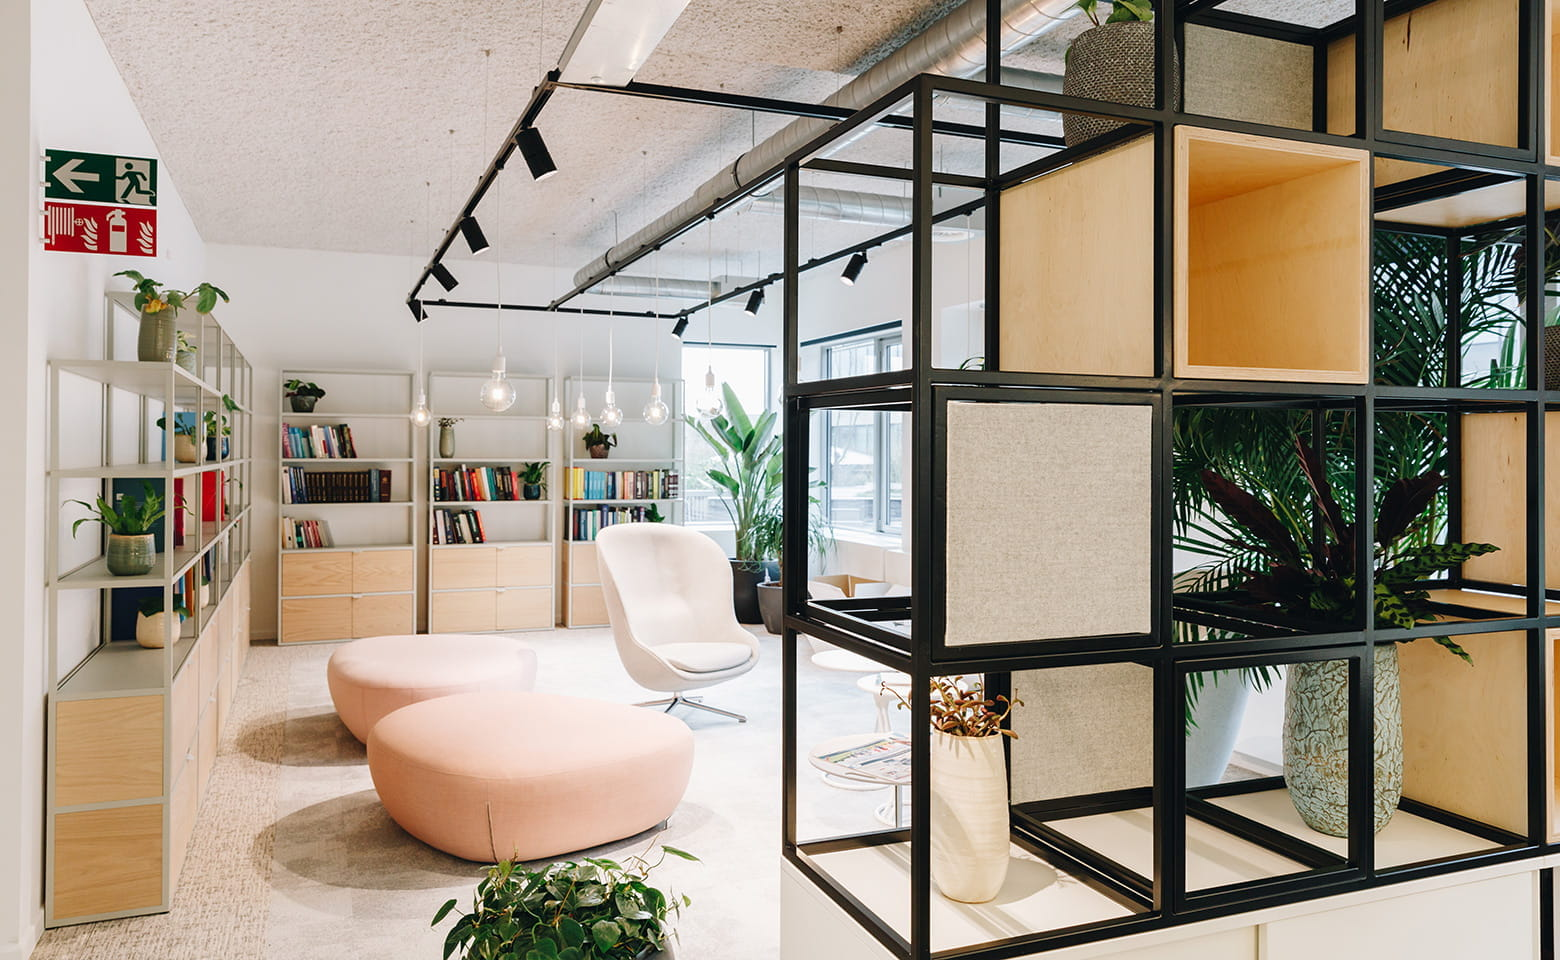 Roche new offices by Cushman & Wakefield Design + Build